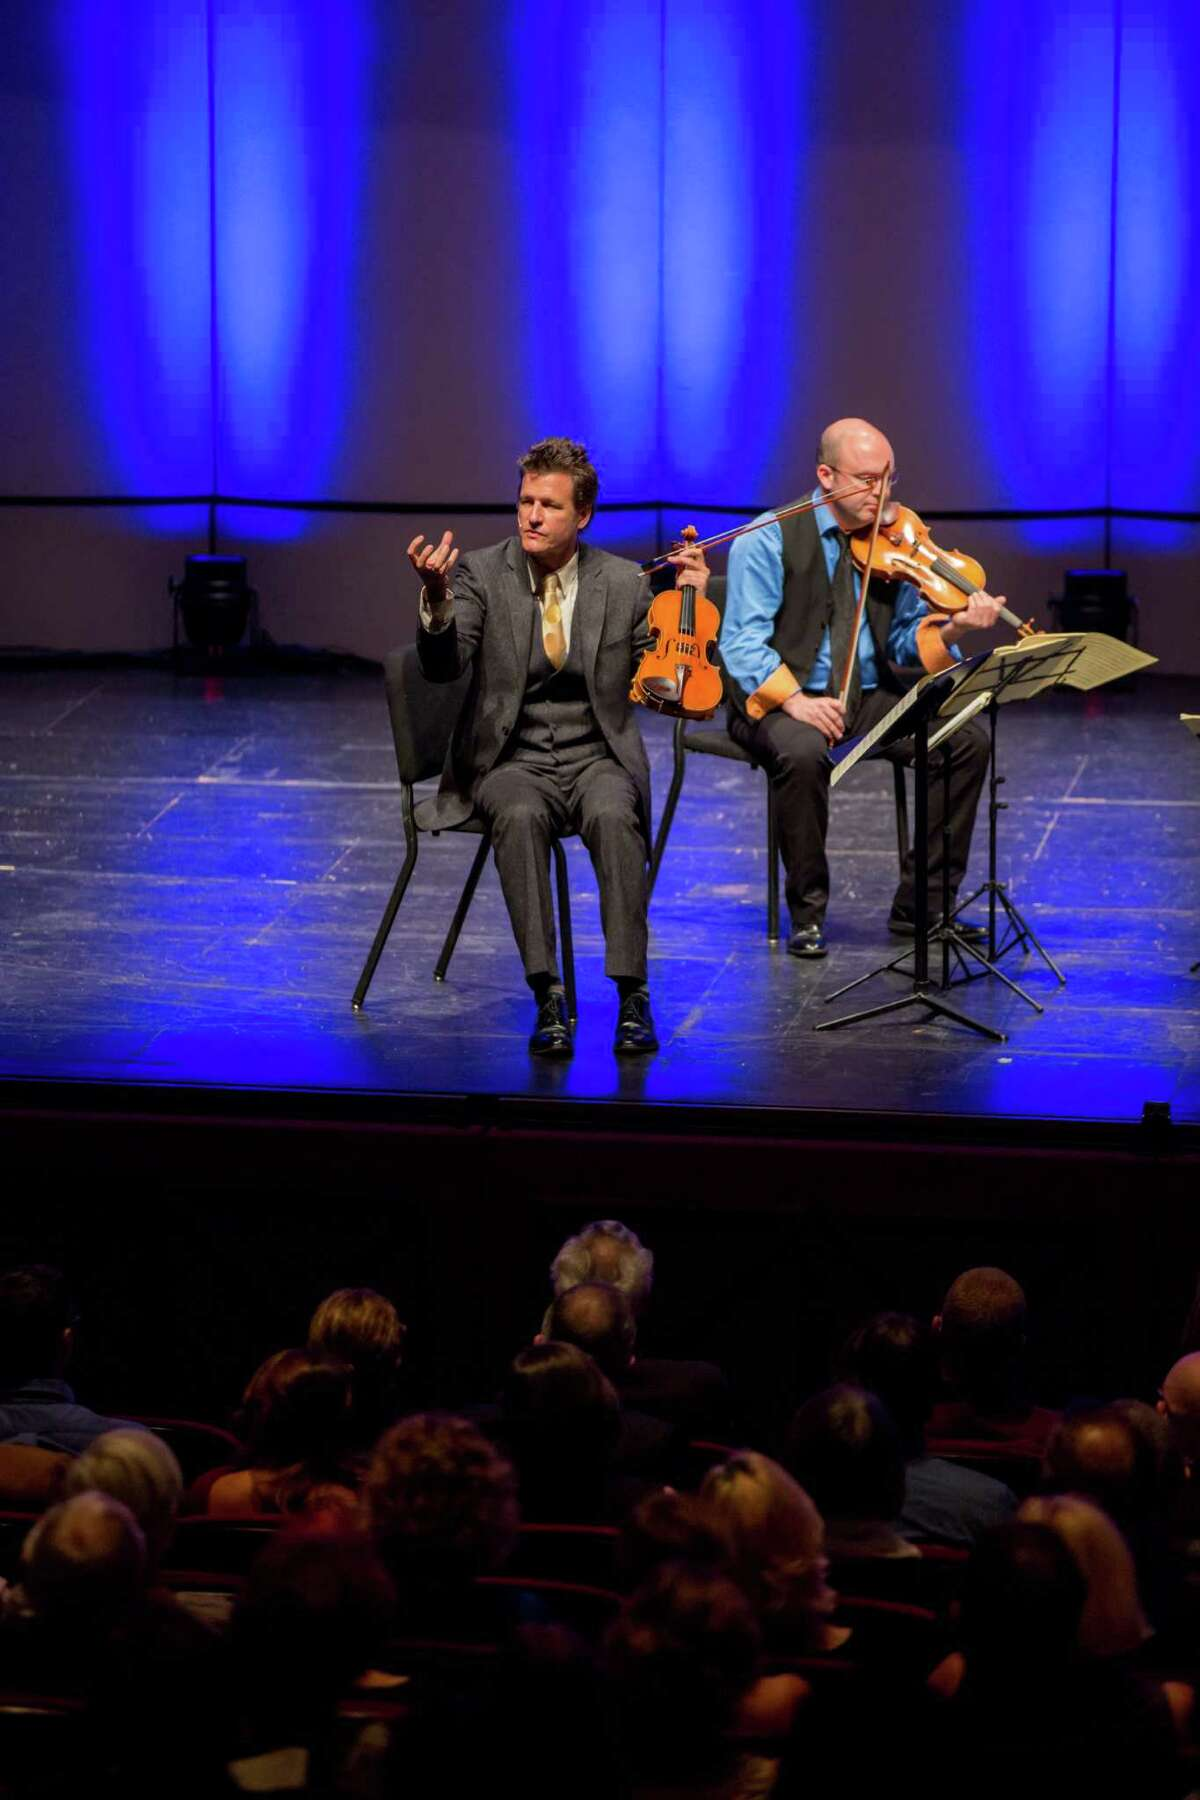 Geoff Nuttall, first violinist of the St. Lawrence String Quartet, discusses a Joseph Haydn quartet with Da Camera's audience.